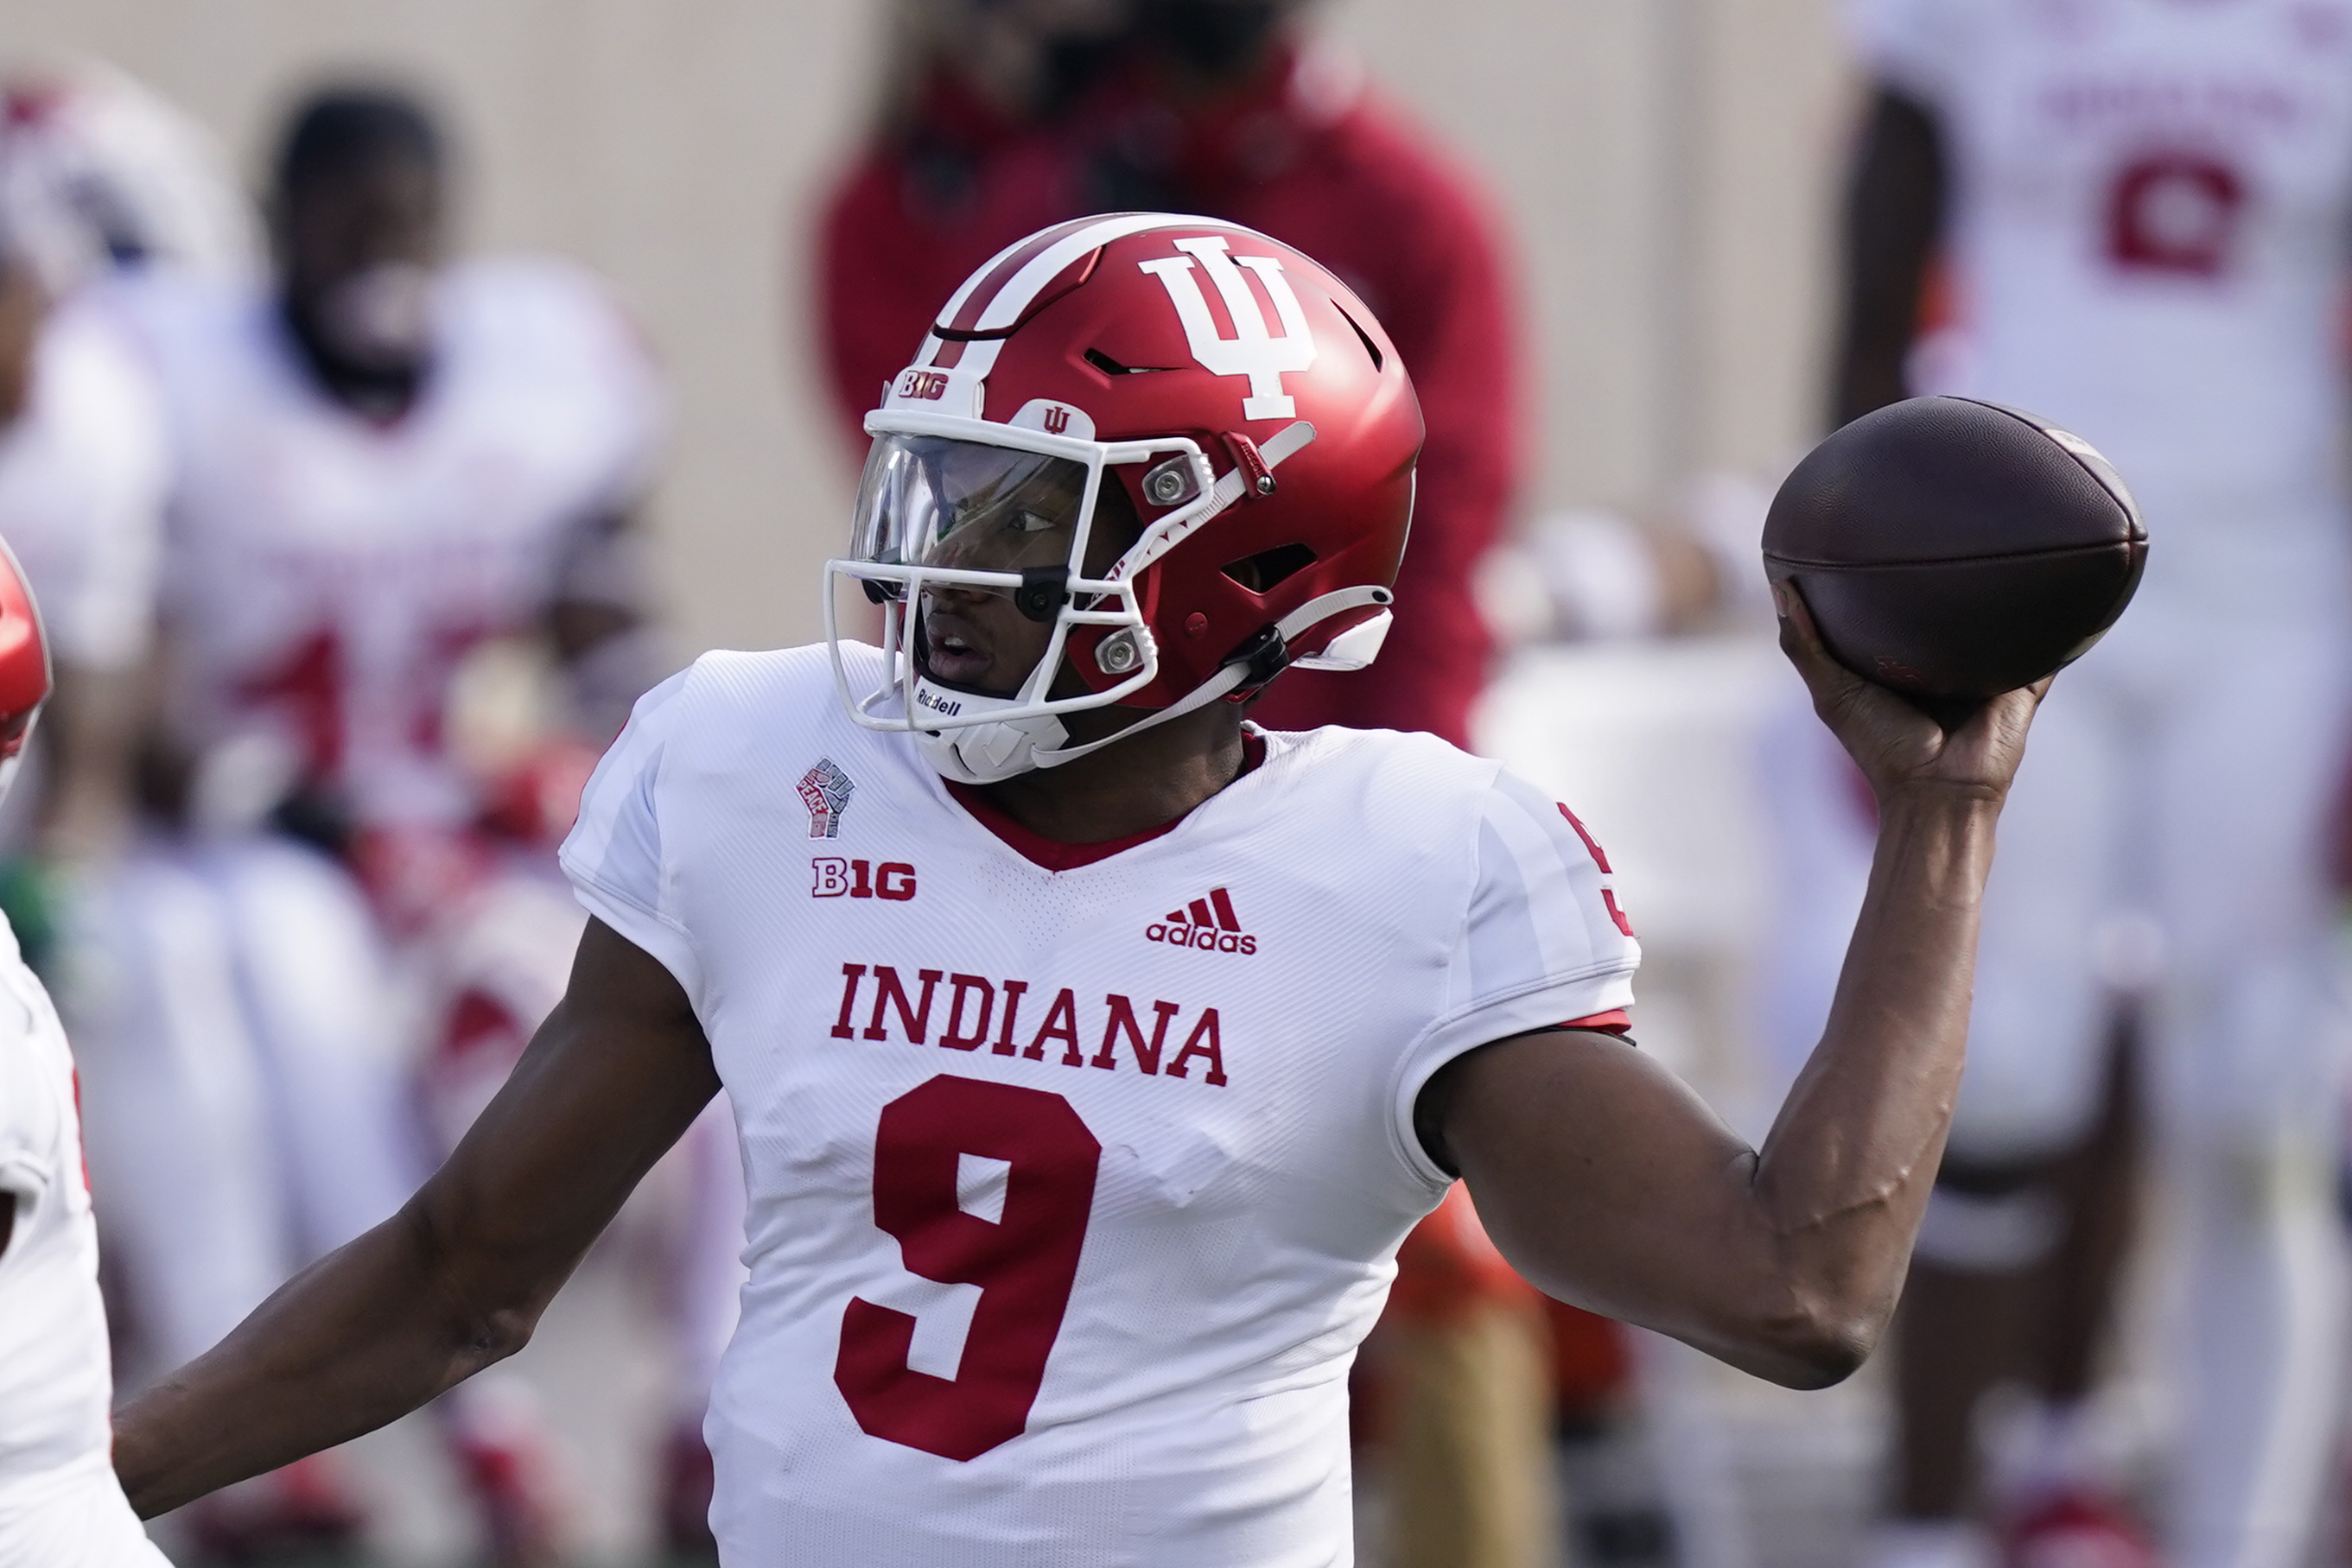 Indiana Vs Ohio State FREE LIVE STREAM Watch Big Ten College Football Online Time TV Channel Nj com